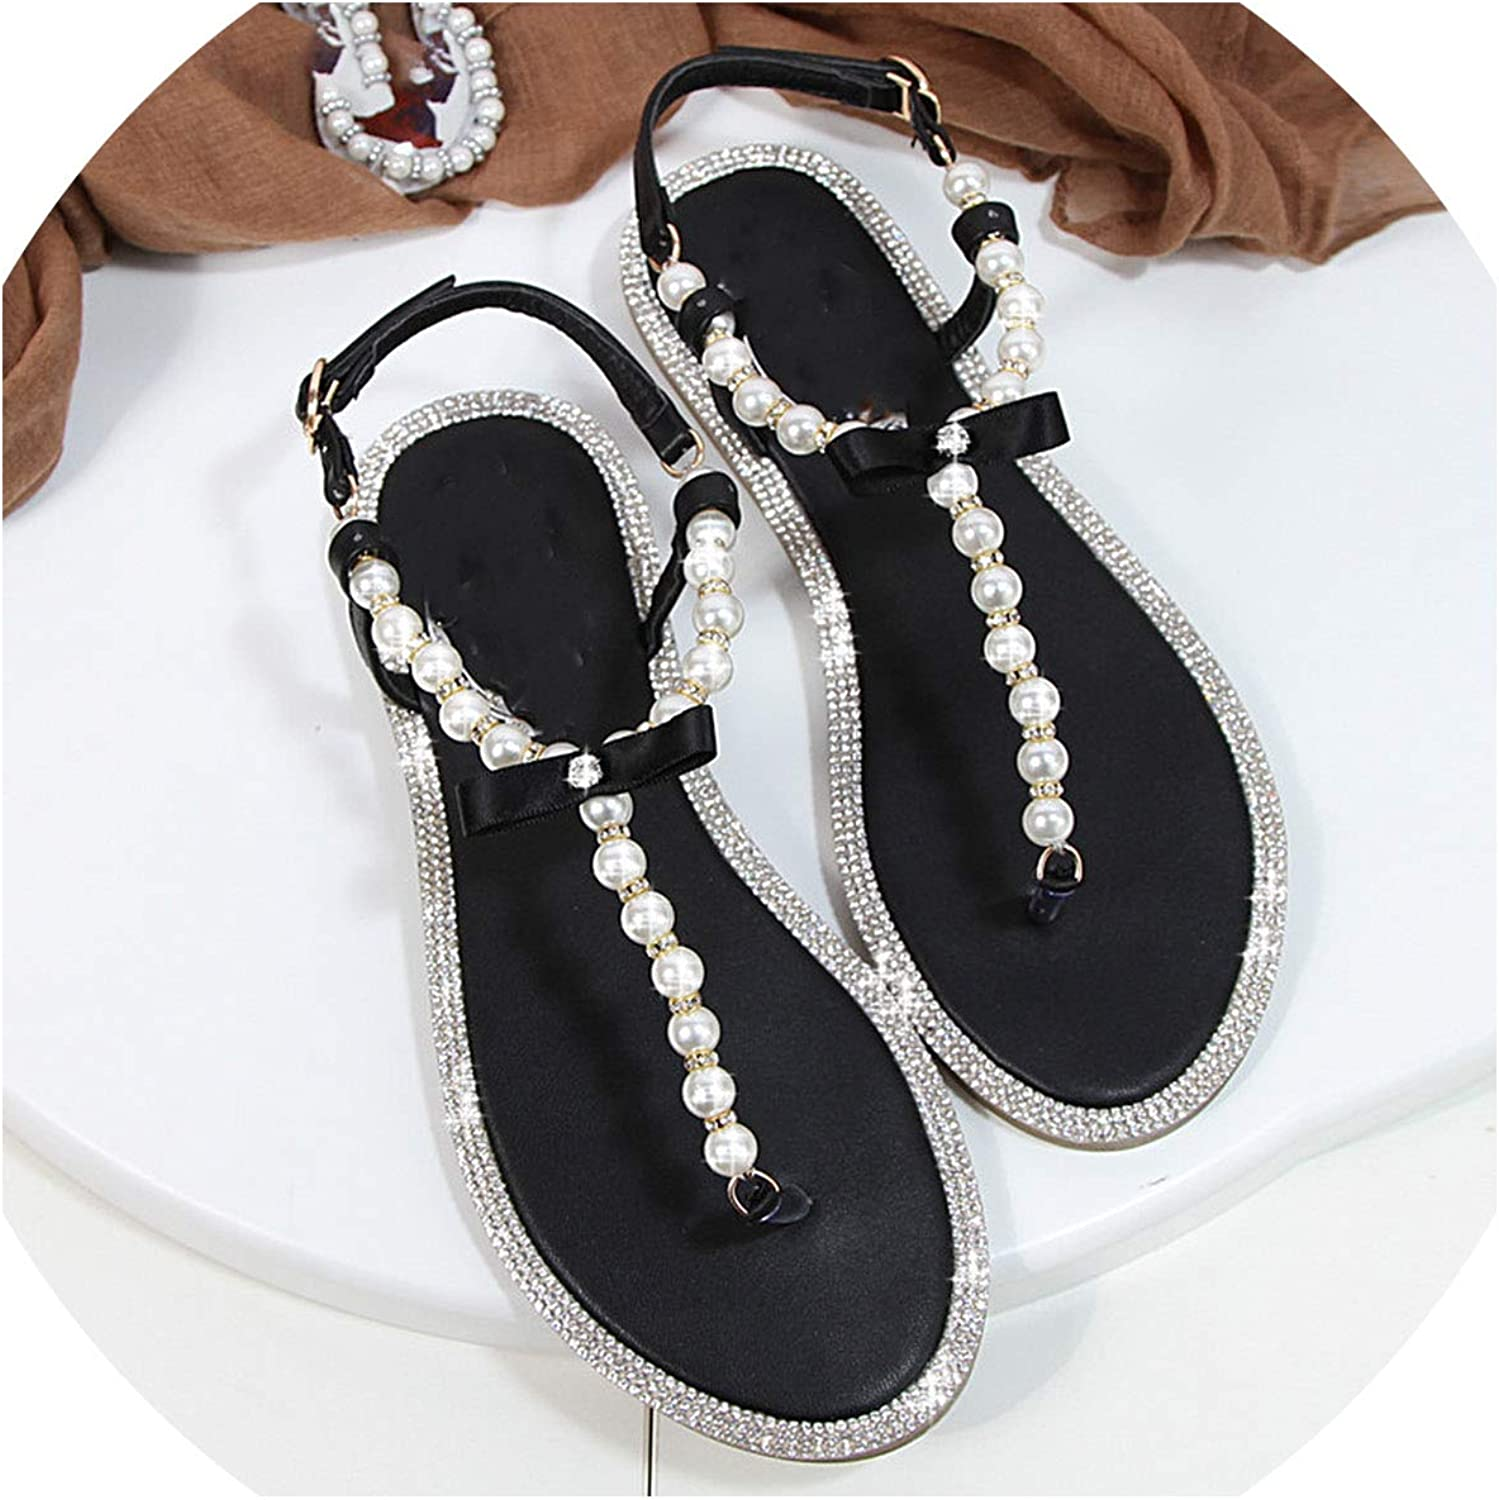 Women Sandals 2019 New Summer shoes Flat Pearl Sandals Comfortable String Bead Beach Slippers Casual Sandals Pink White Black